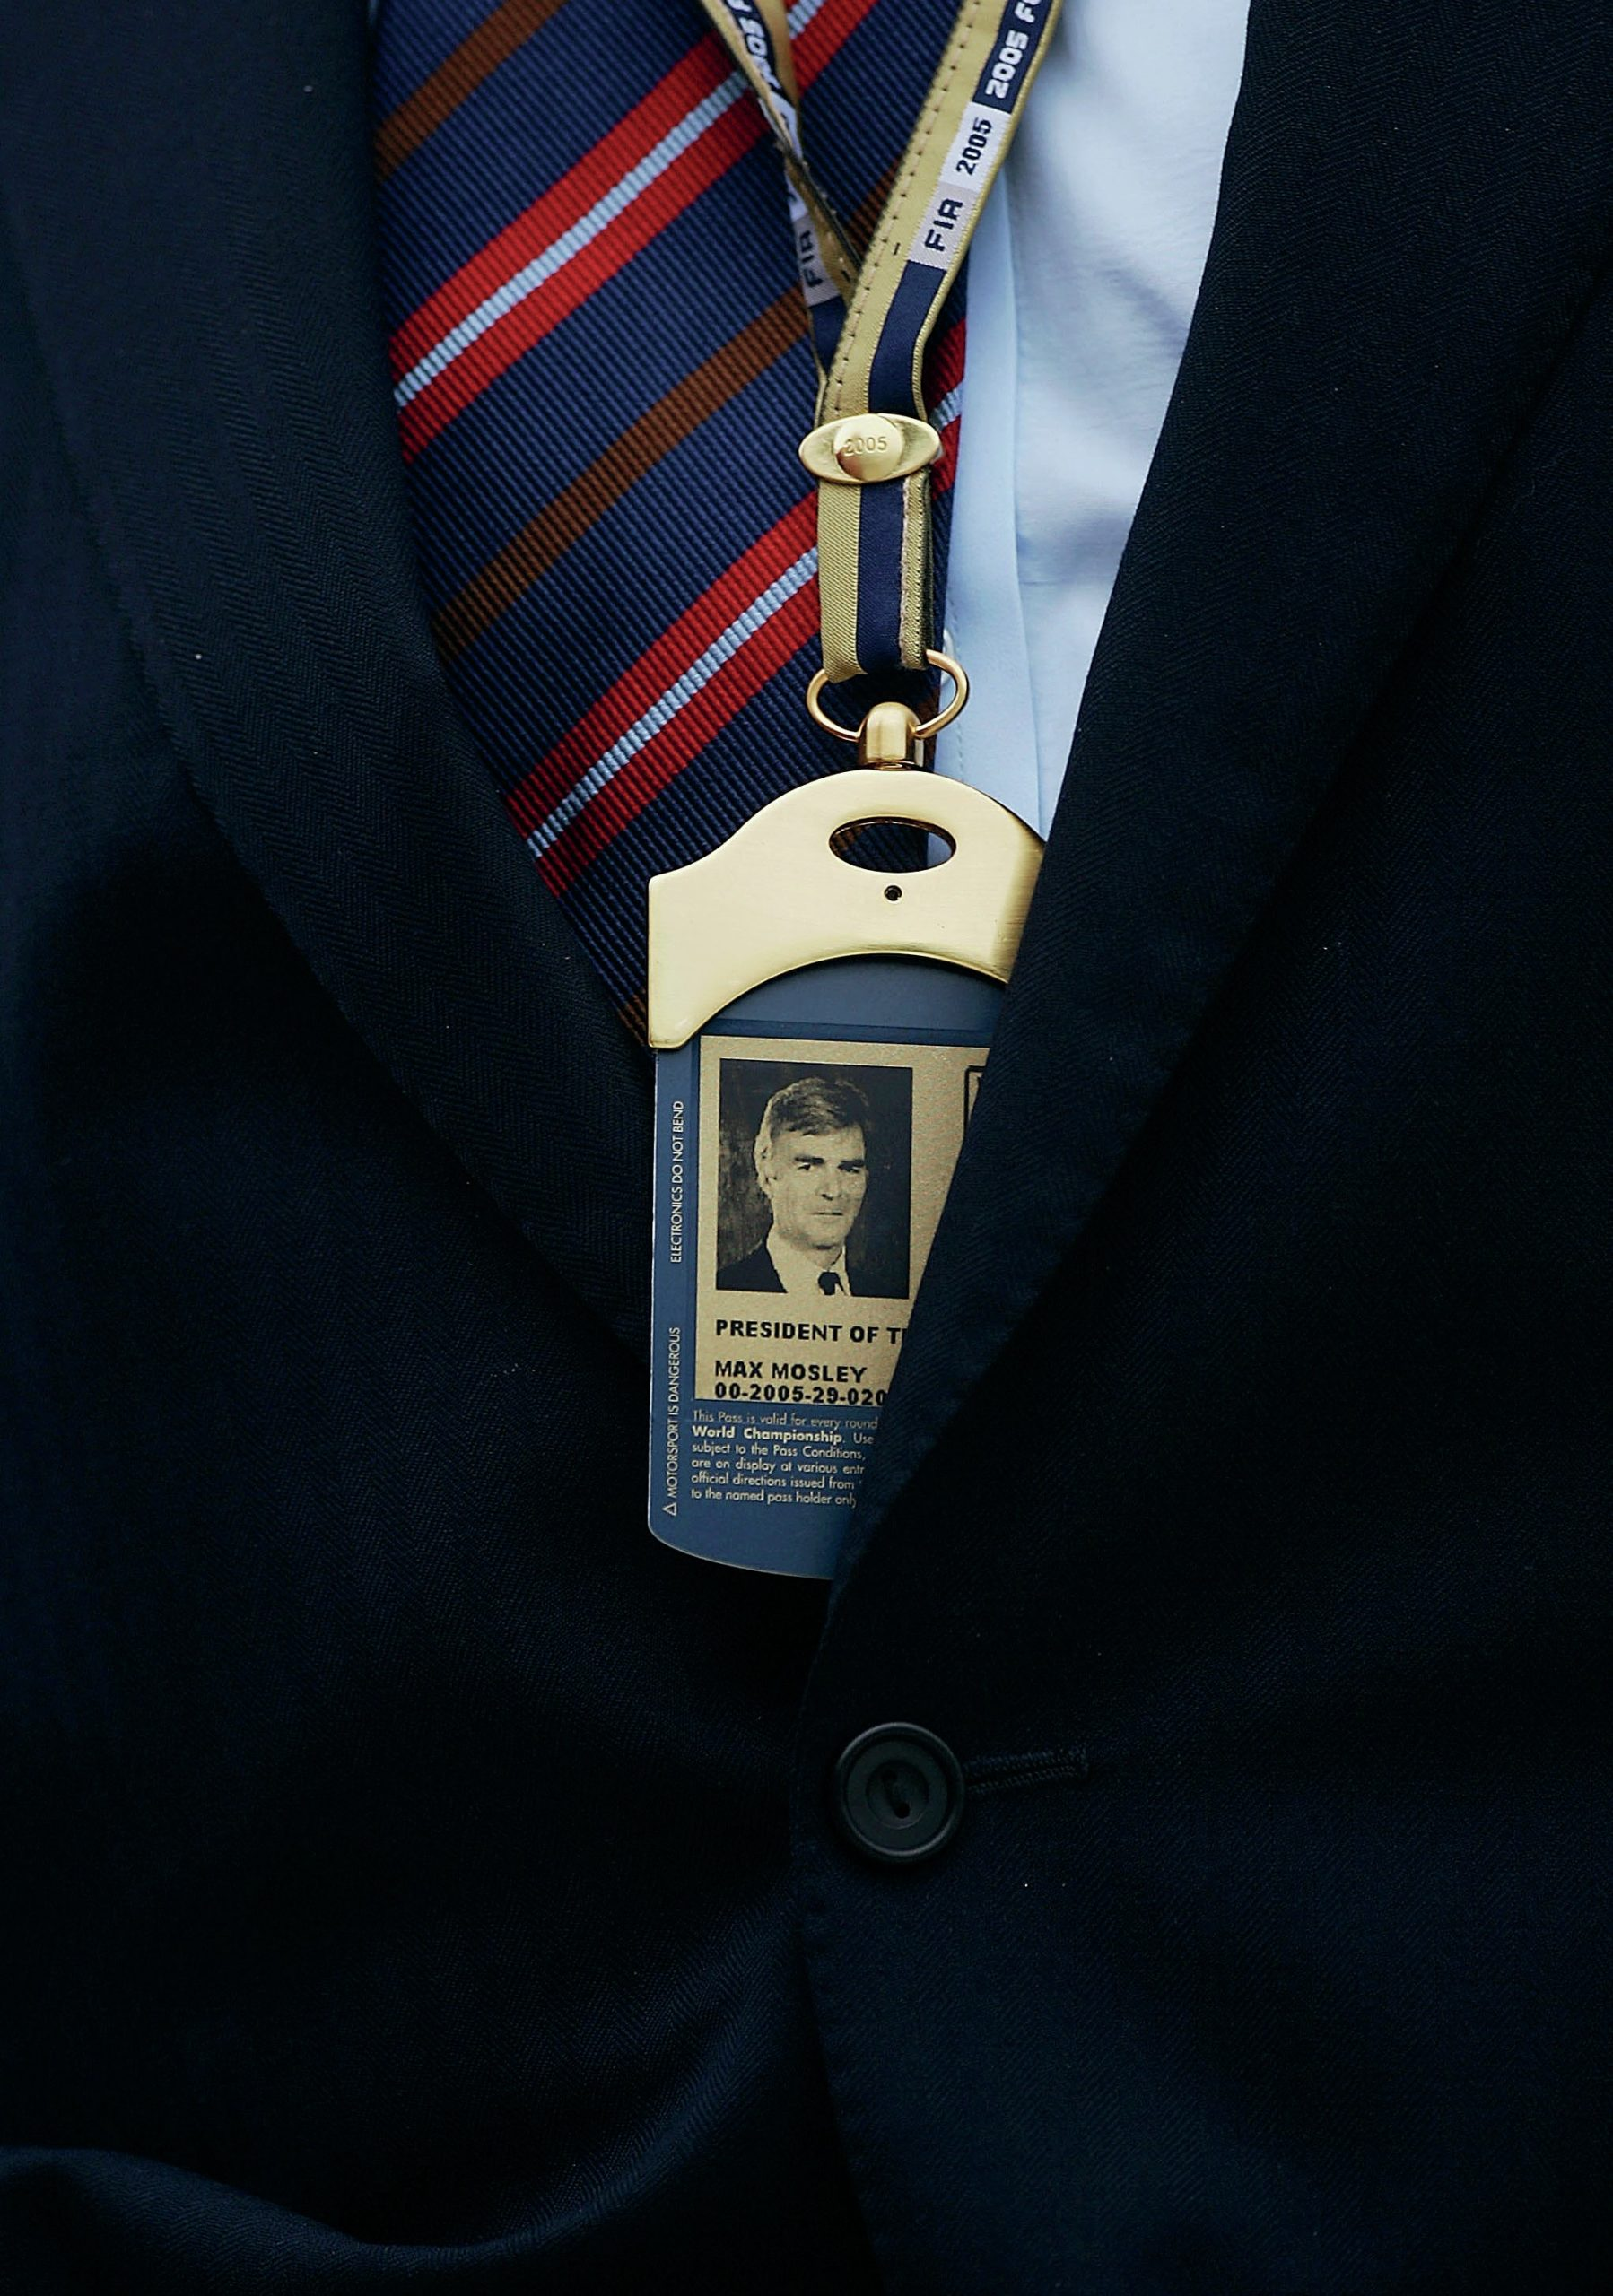 Max Mosley F1 pass